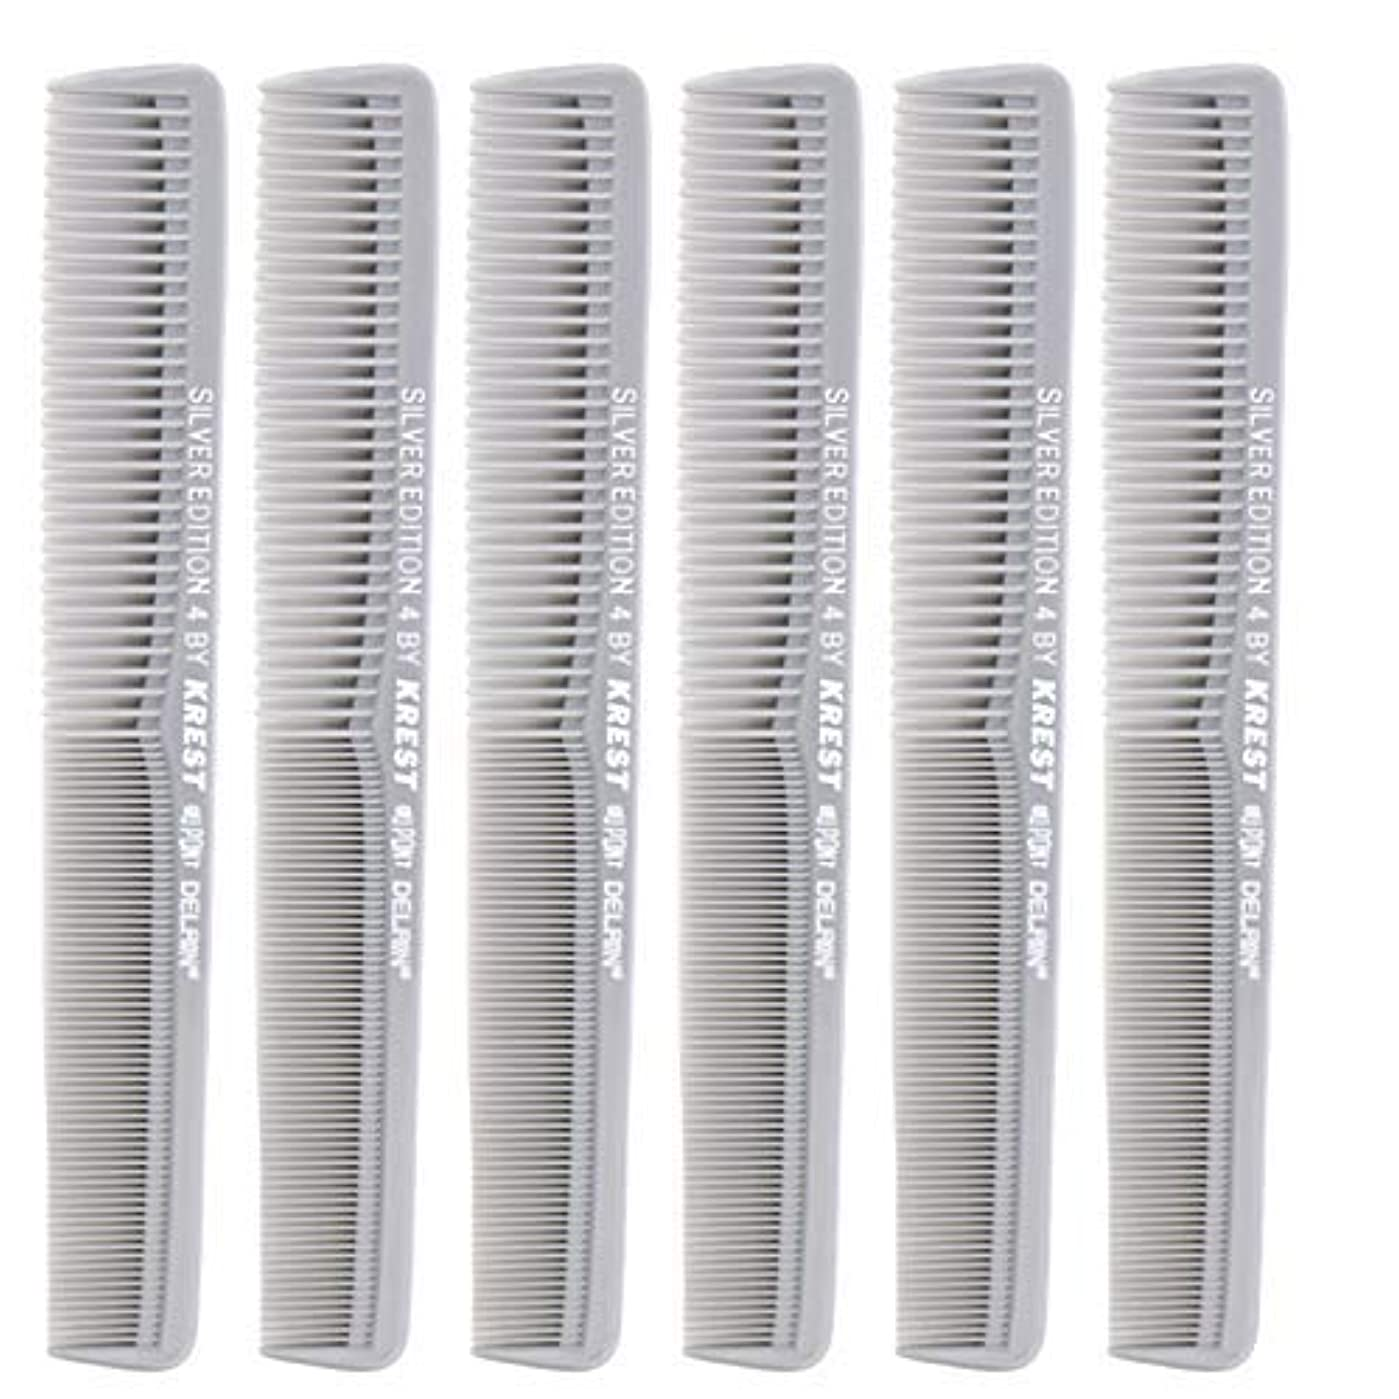 超音速インペリアルレーニン主義7 In. Silver Edition Heat Resistant All Purpose Hair Comb Model #4 Krest Comb, [並行輸入品]